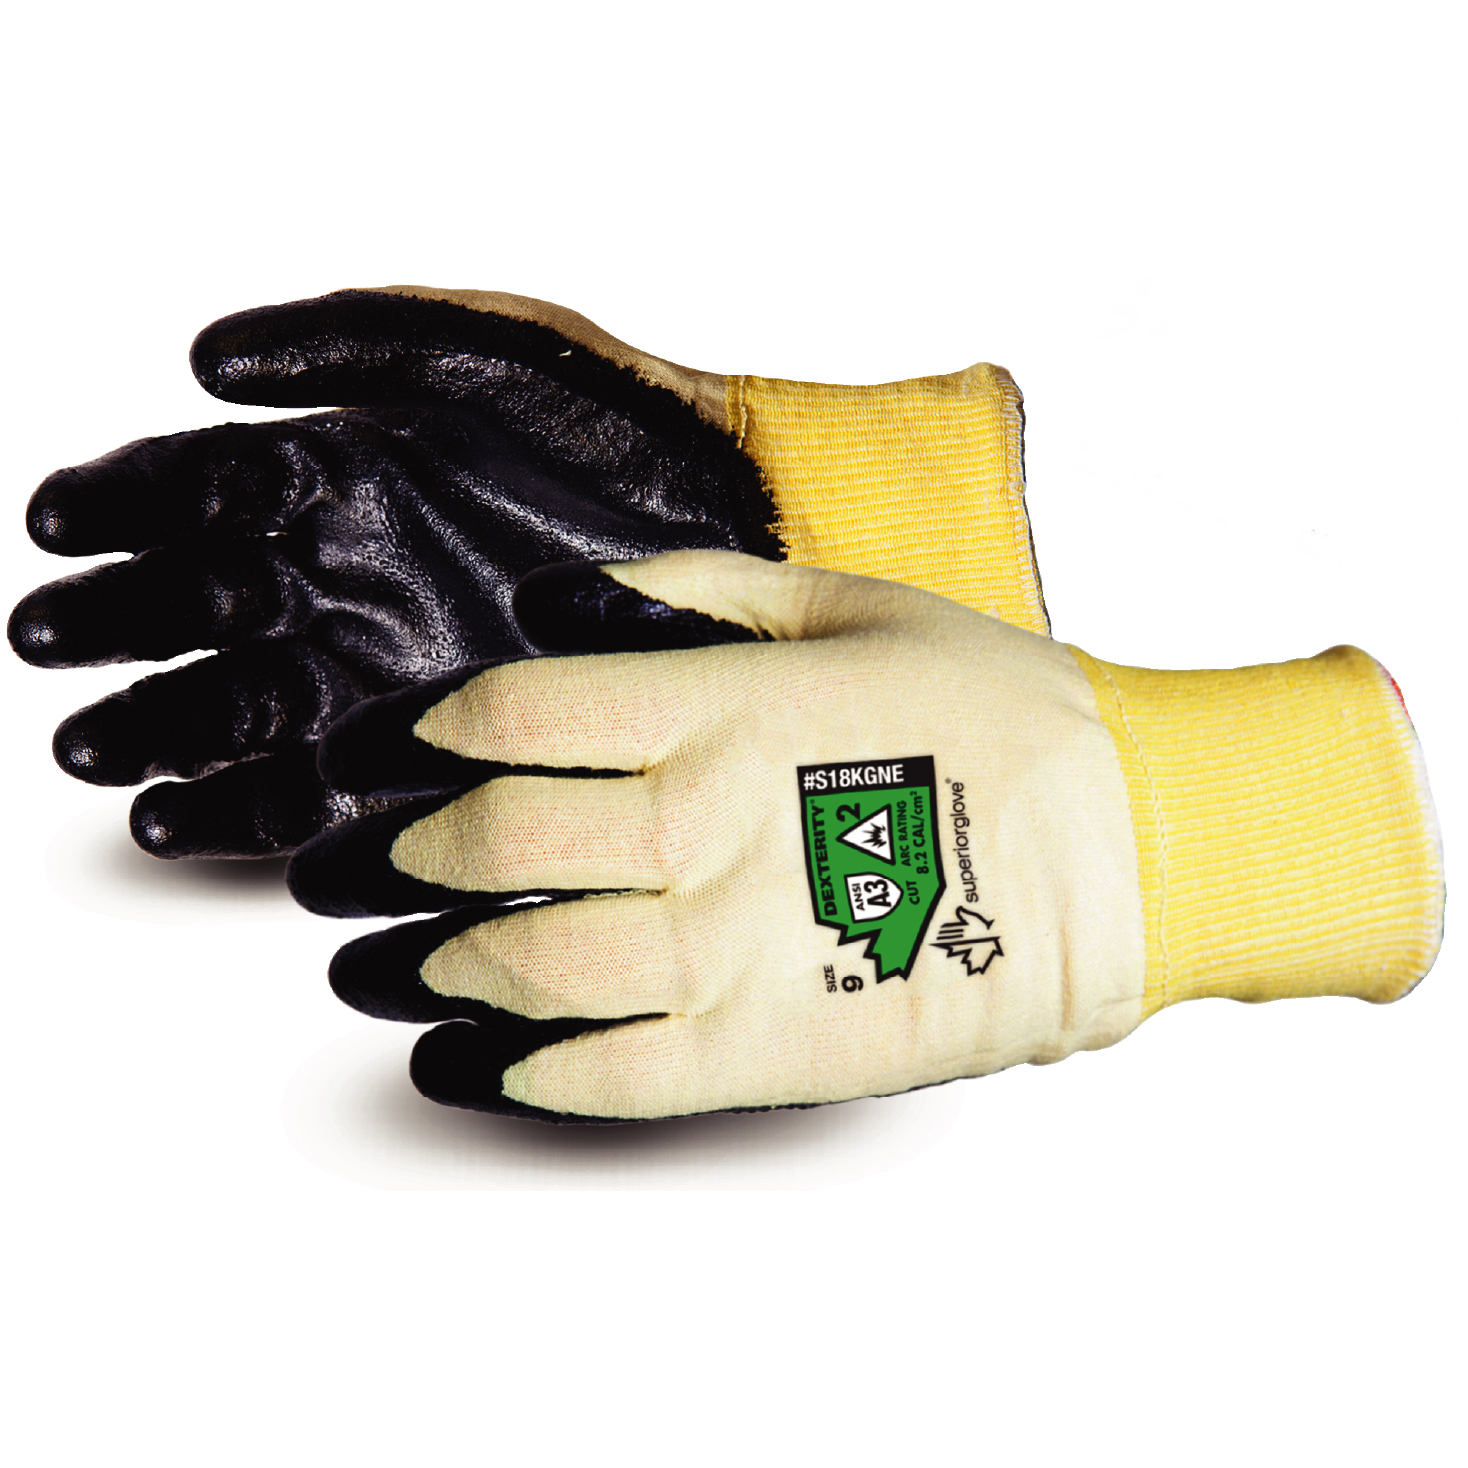 Superior Glove Dexterity 18-G Flame-Resist Arc Flash 7 Black Ref SUS18KGNE07 Up to 3 Day Leadtime